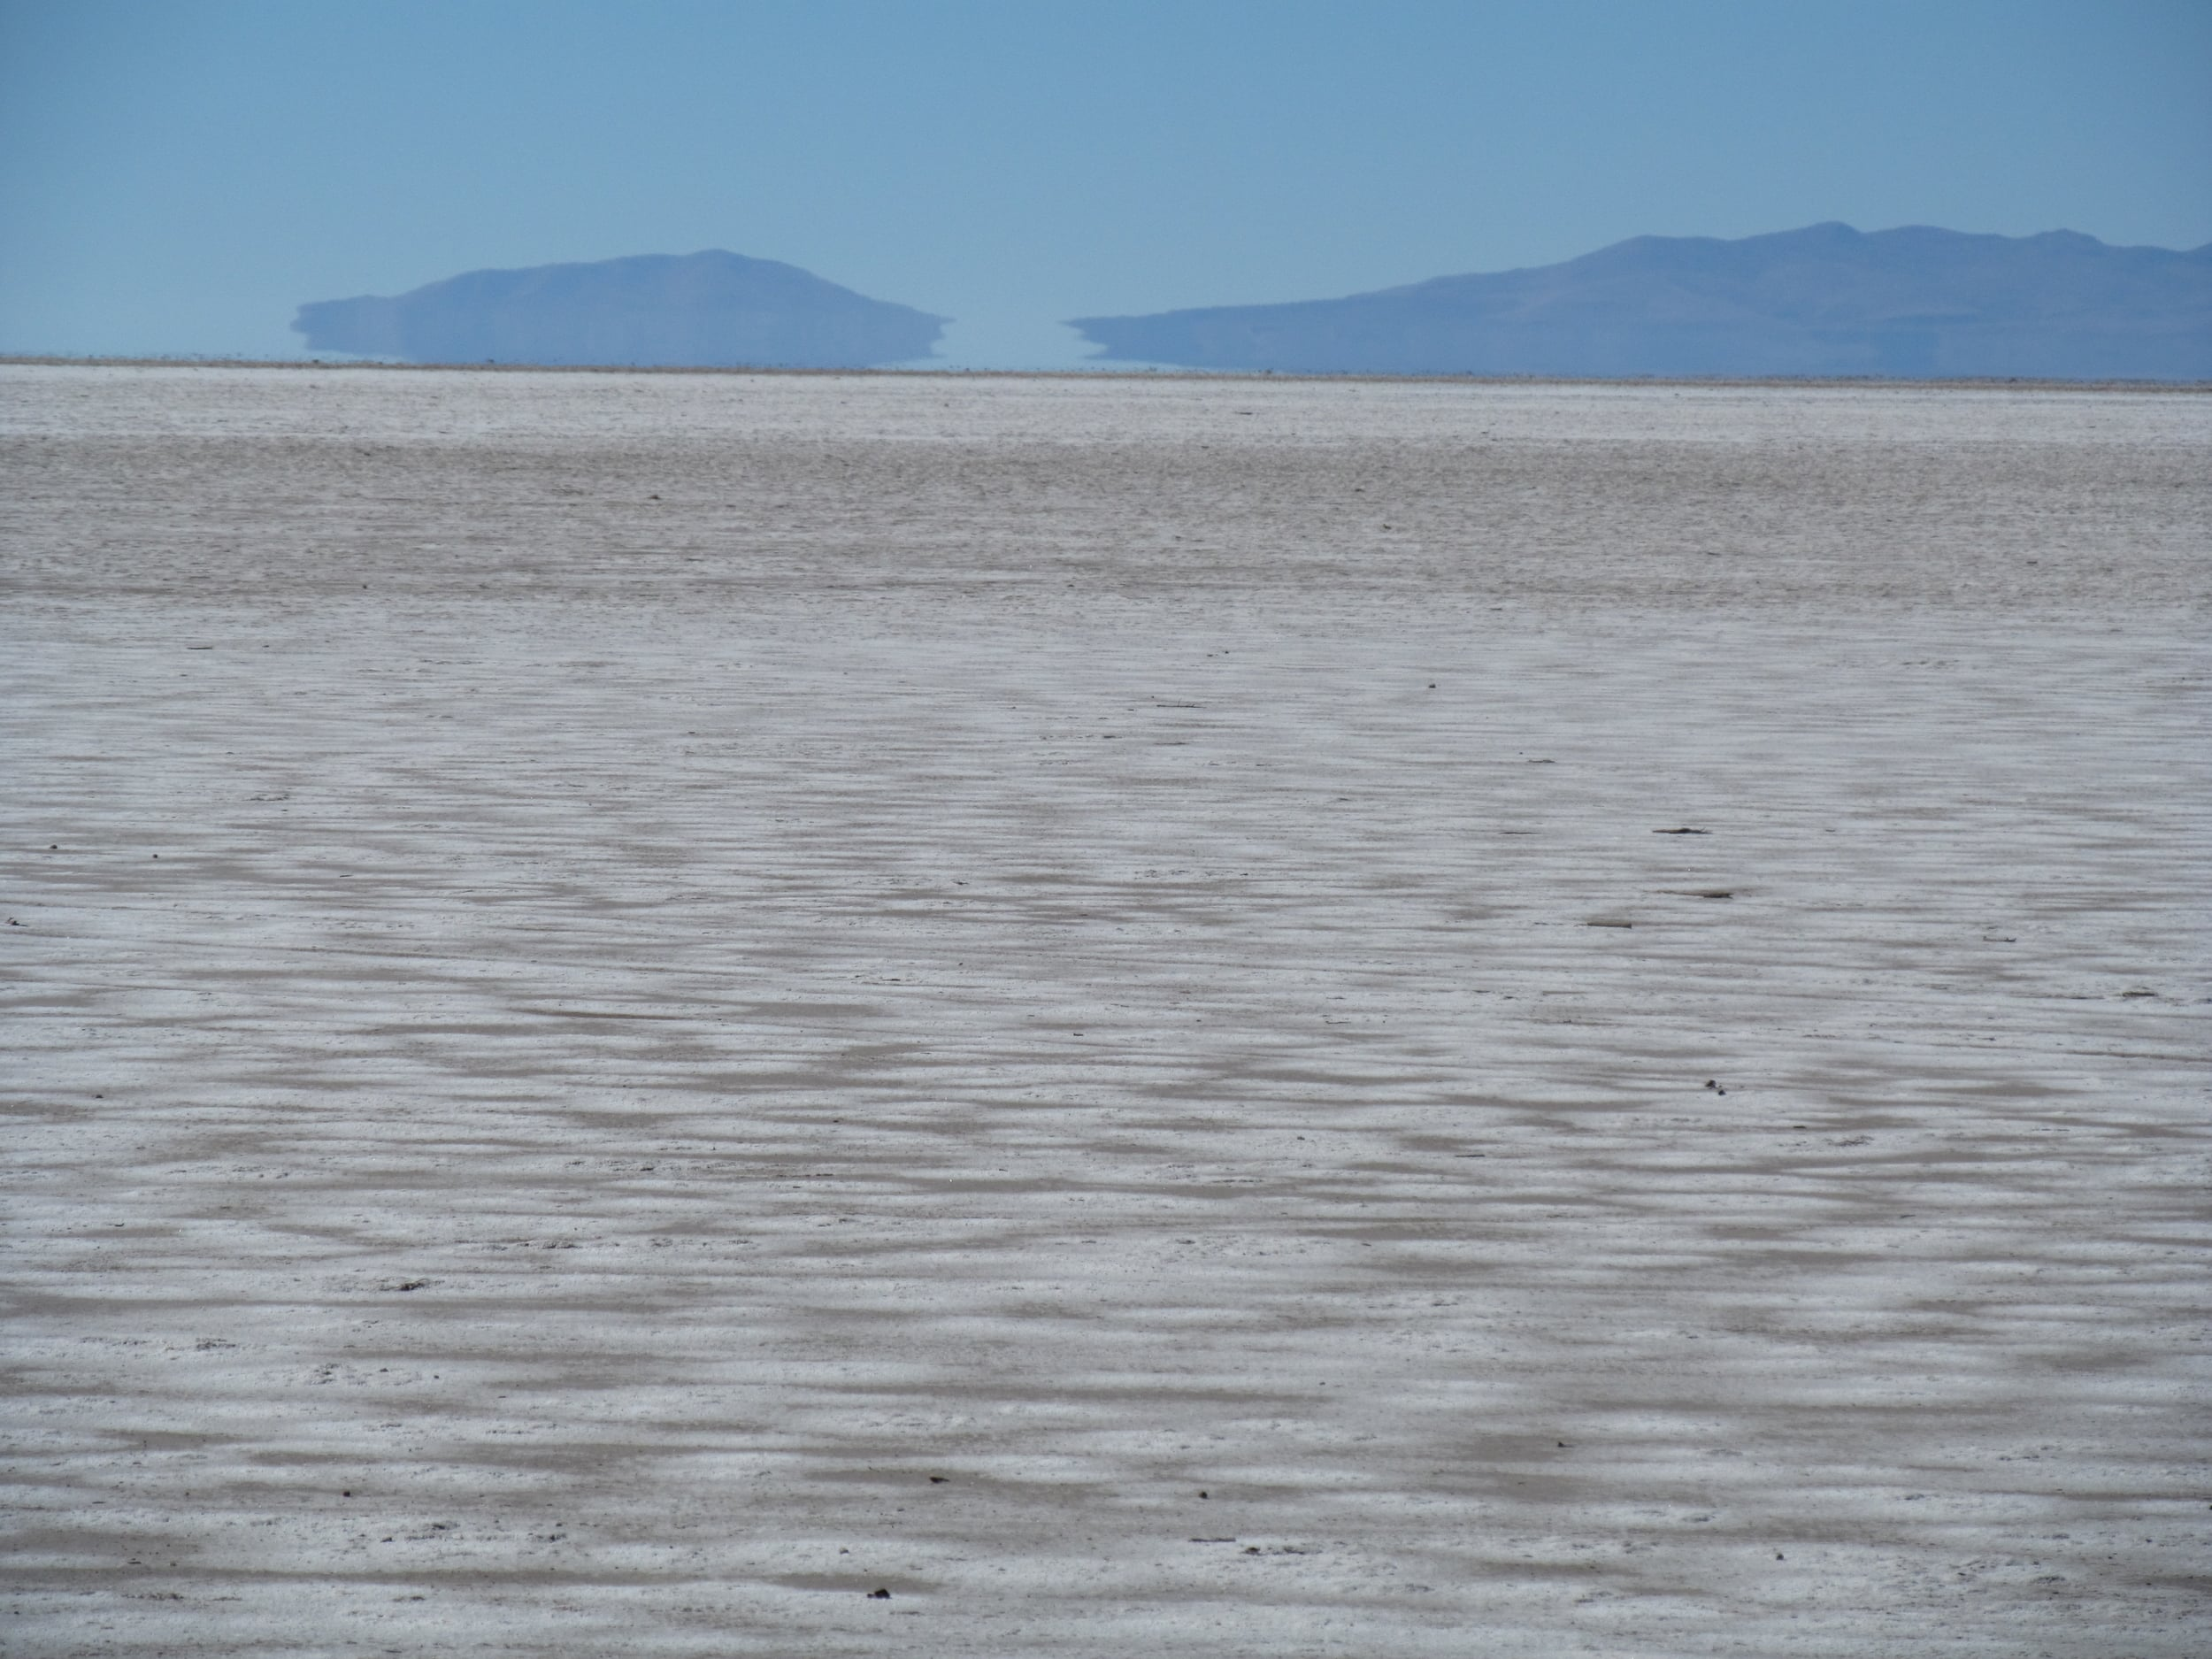 The islands look like they are floating as we finally cycle on Salar de Coipasa.